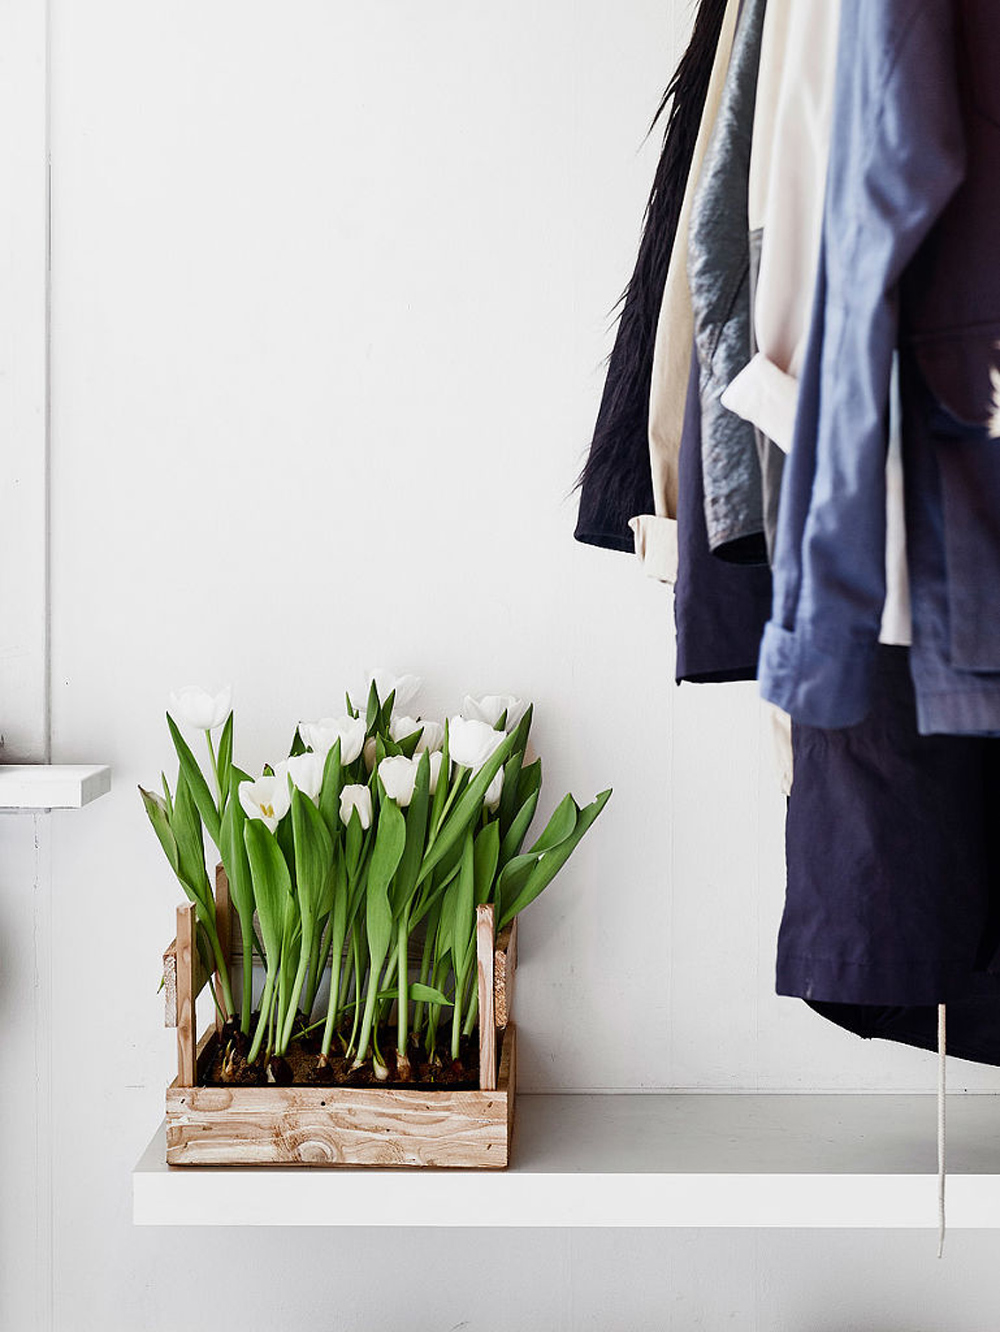 Oracle, Fox, Sunday, Sanctuary, At, Ease, Monochrome, Scandinavian, Interior, Entrance, Plants, Tulips